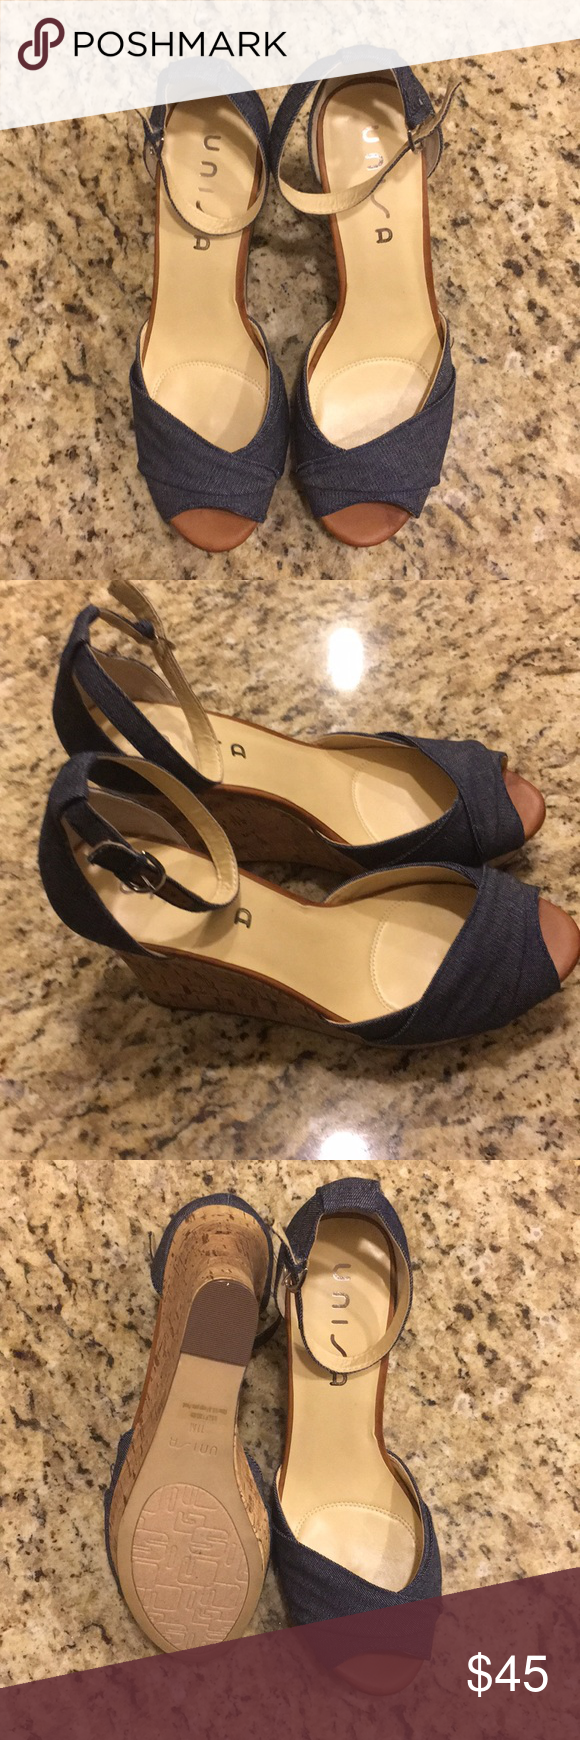 "272466df393 Unisa Blue Denim Wedge Sandals New without Tags Smoke free home Cork Wedge  (approximately 4"") with denim wrapped ankle strap heel and front Unisa Shoes  ..."